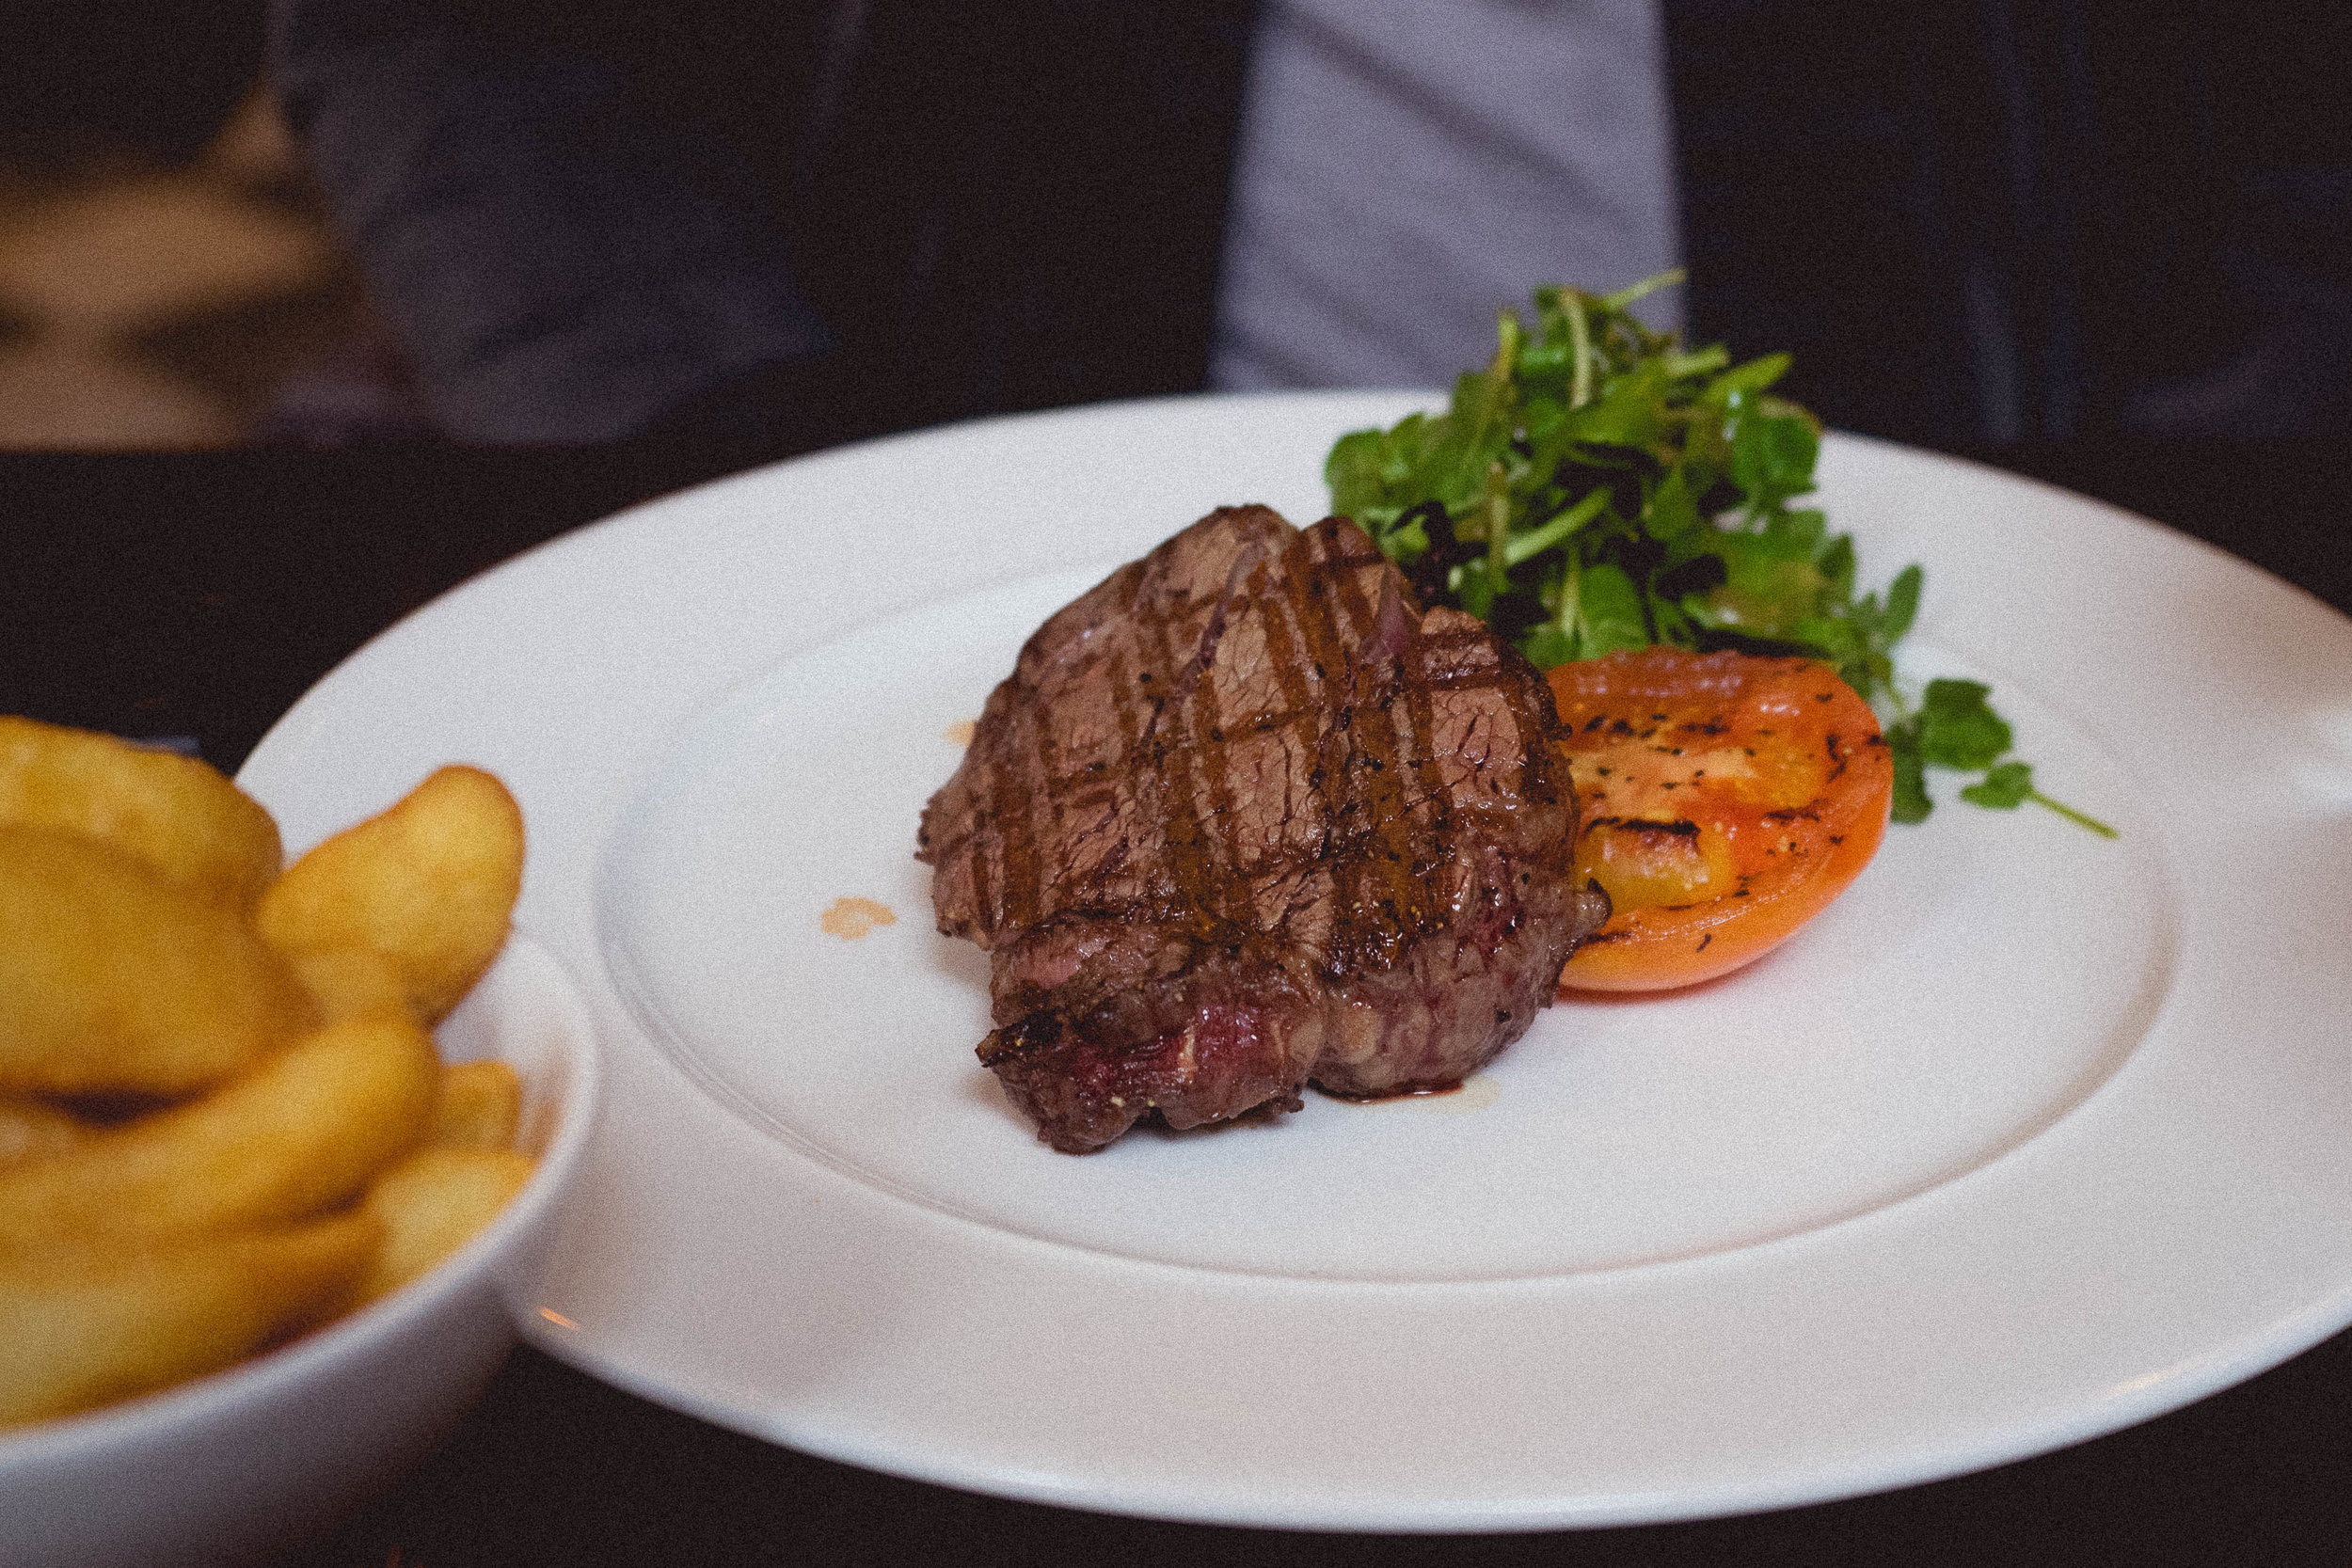 28 day matured 7 oz fillet steak.